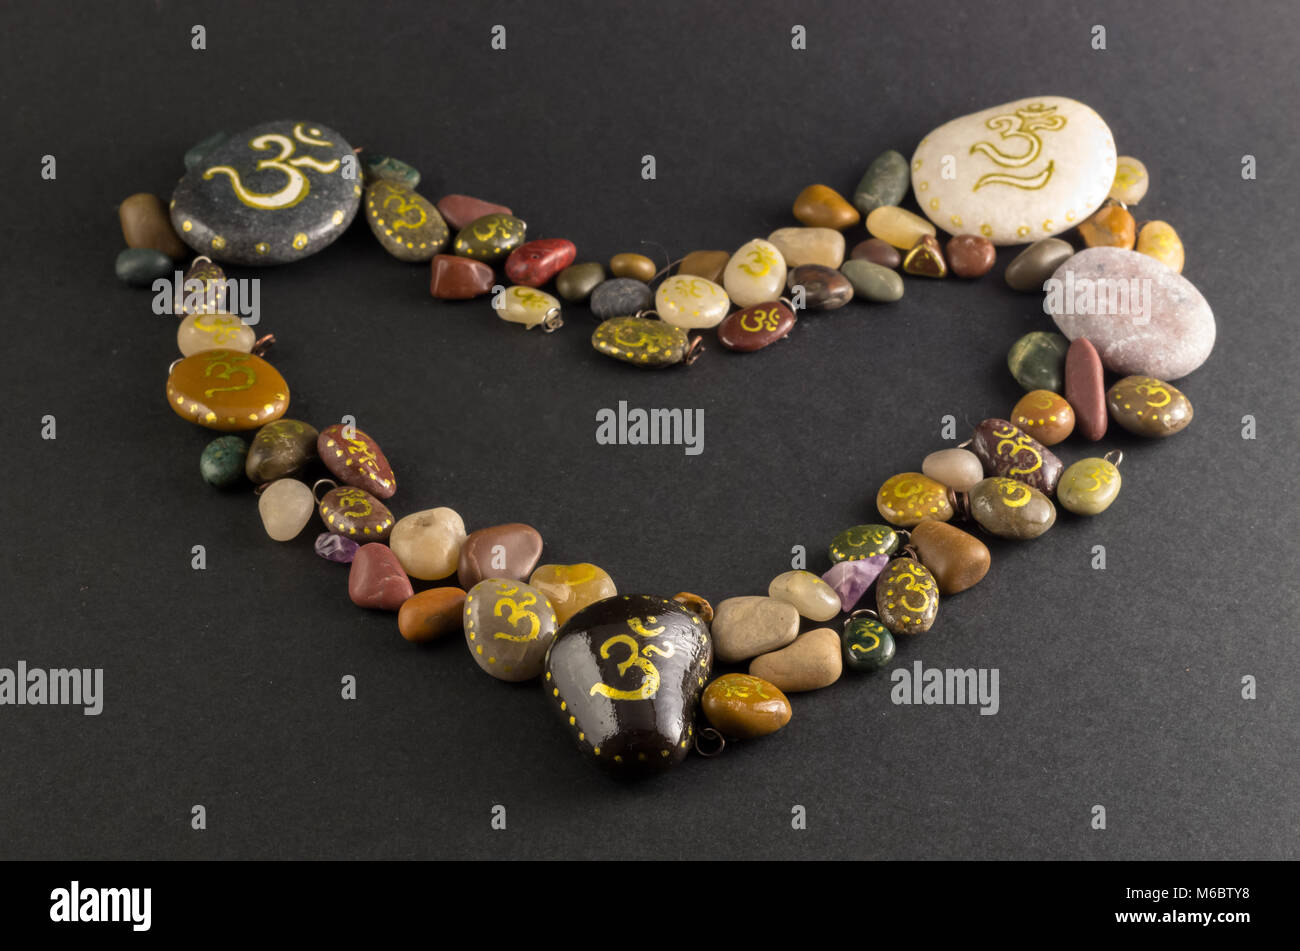 Om symbol stock photos om symbol stock images alamy heart shaped pile of stones painted with om symbol stock image biocorpaavc Image collections